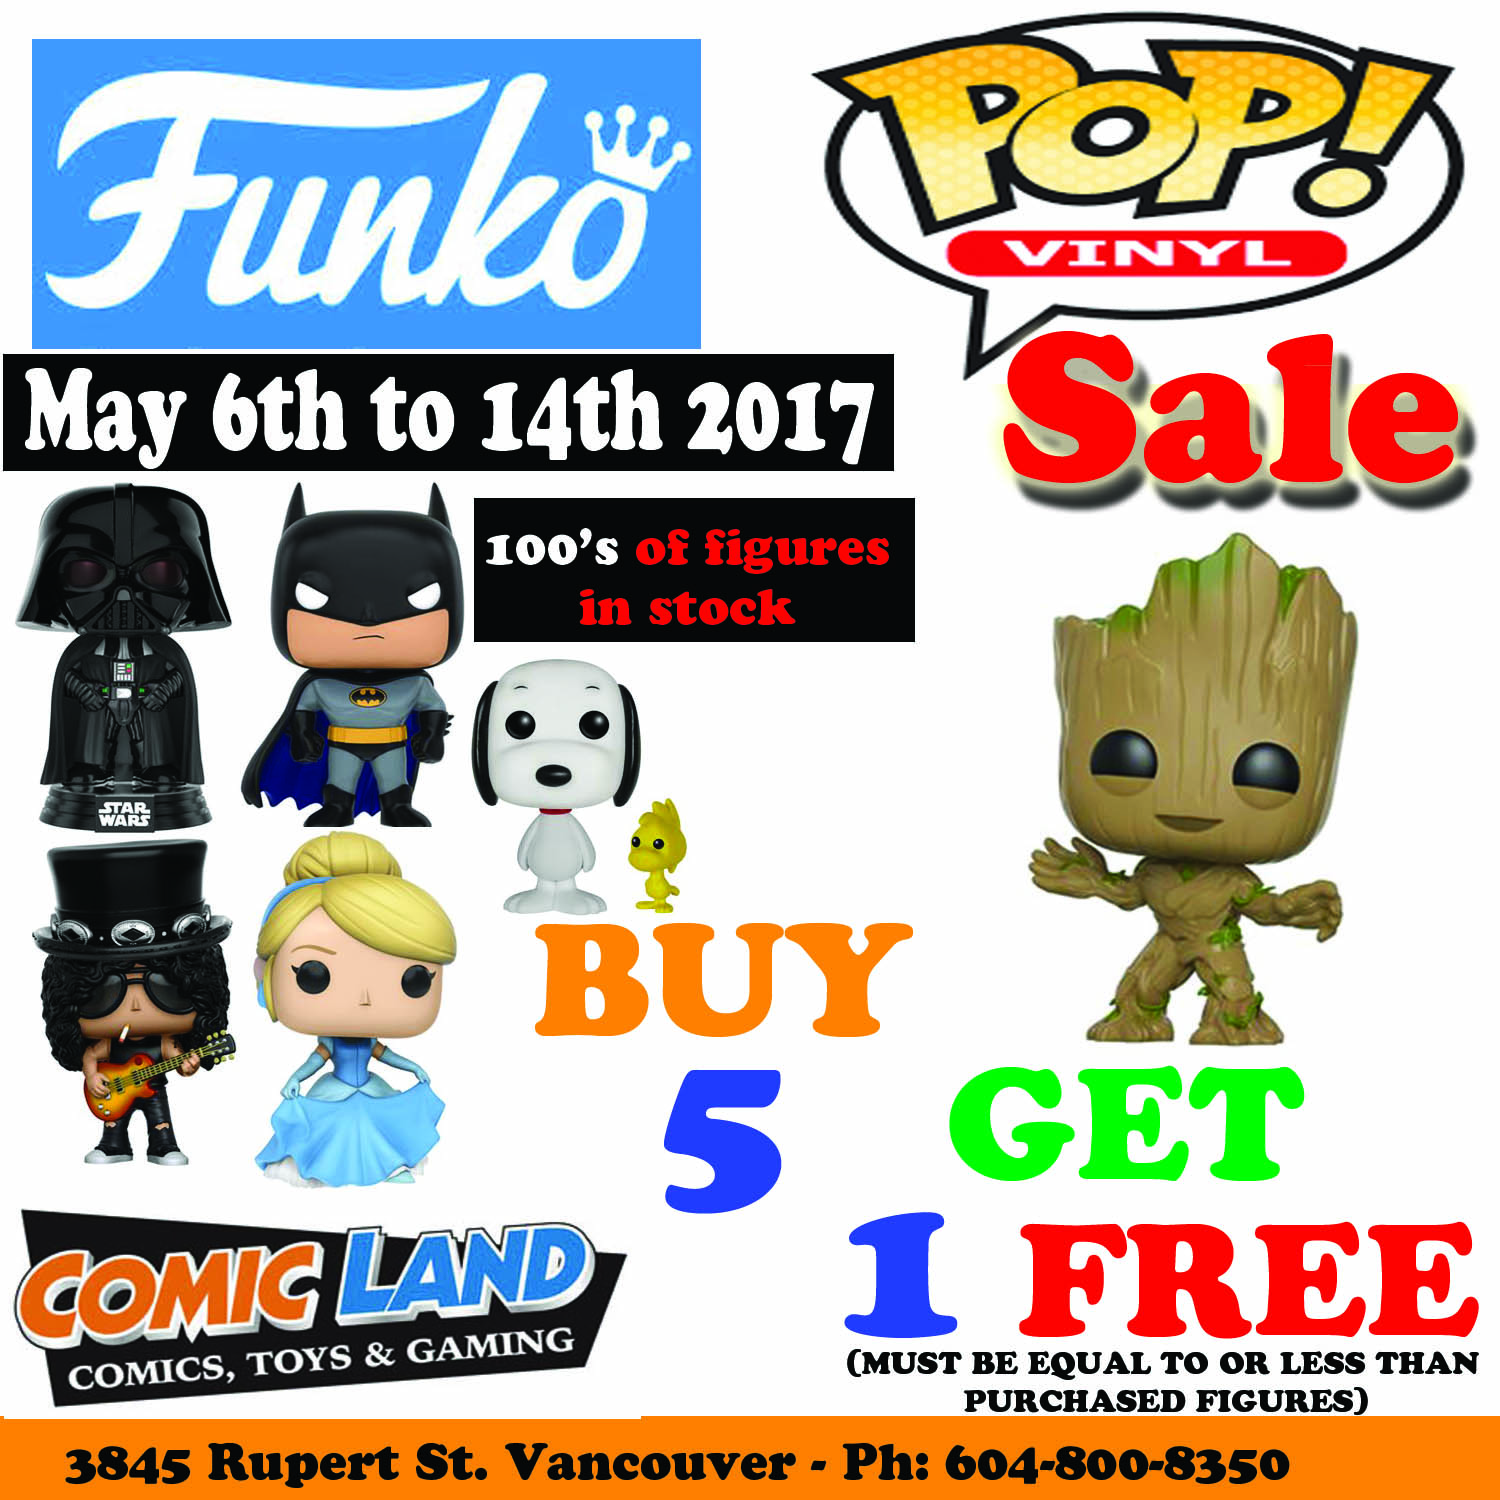 FUNKO POP VINYL SALE EXTENDED - BUY 5, GET 1 FREE- MAY 6TH TO 14TH 2017